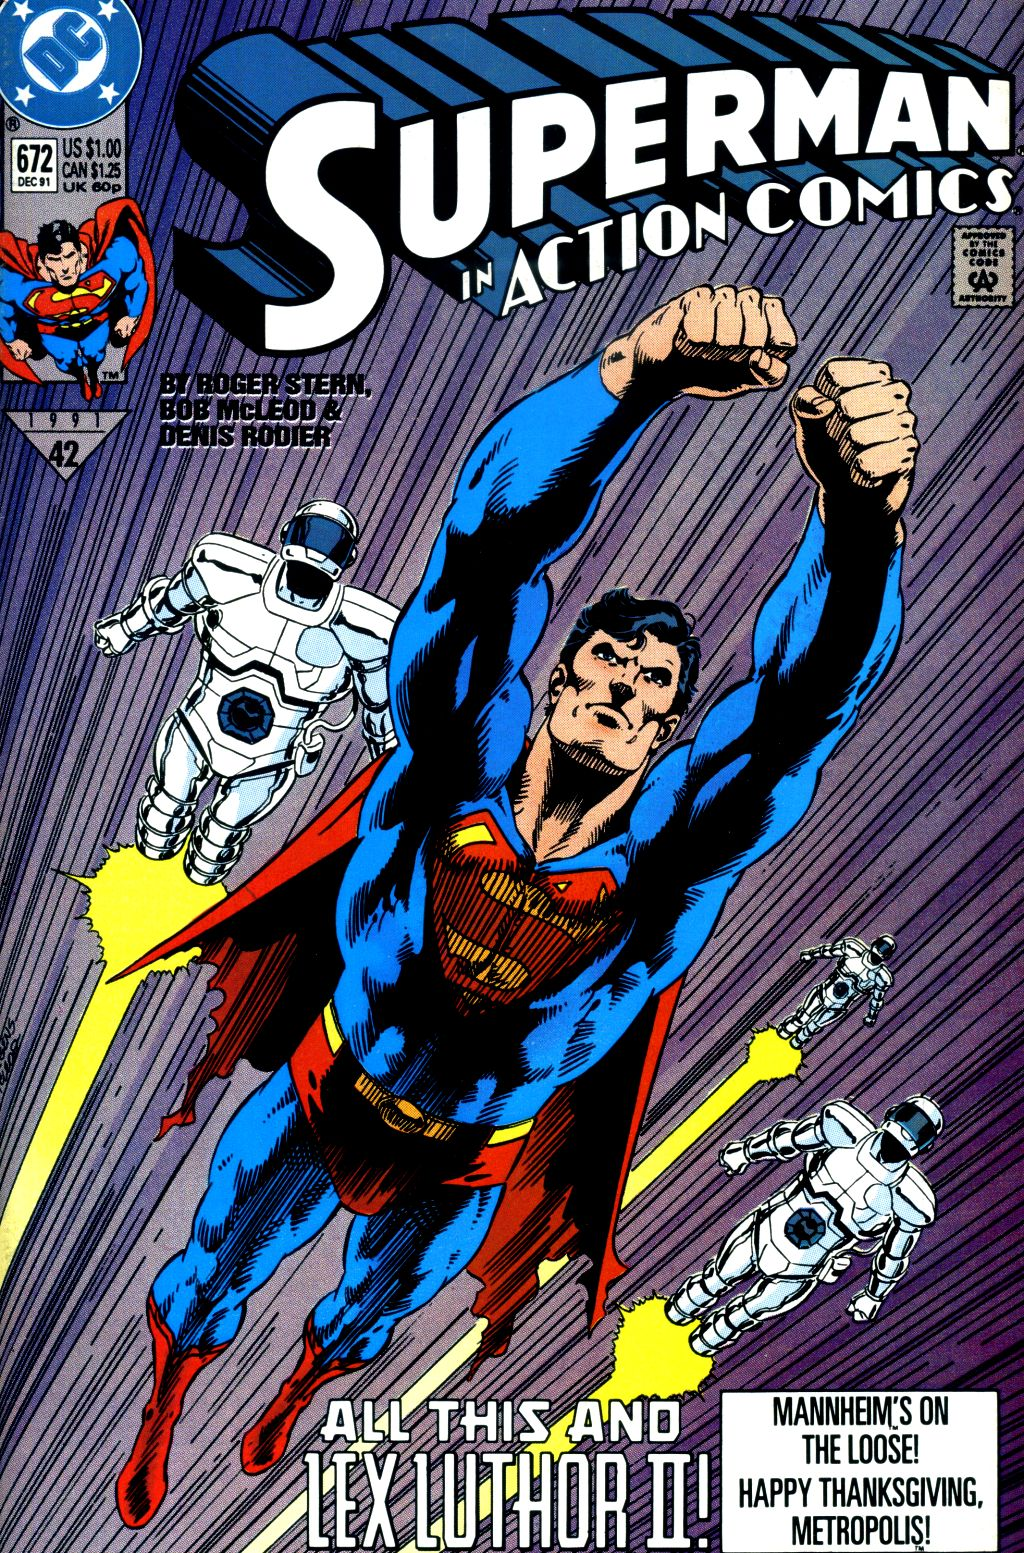 Action Comics (1938) #672, cover penciled by Dan Jurgens & inked by Bob McLeod.